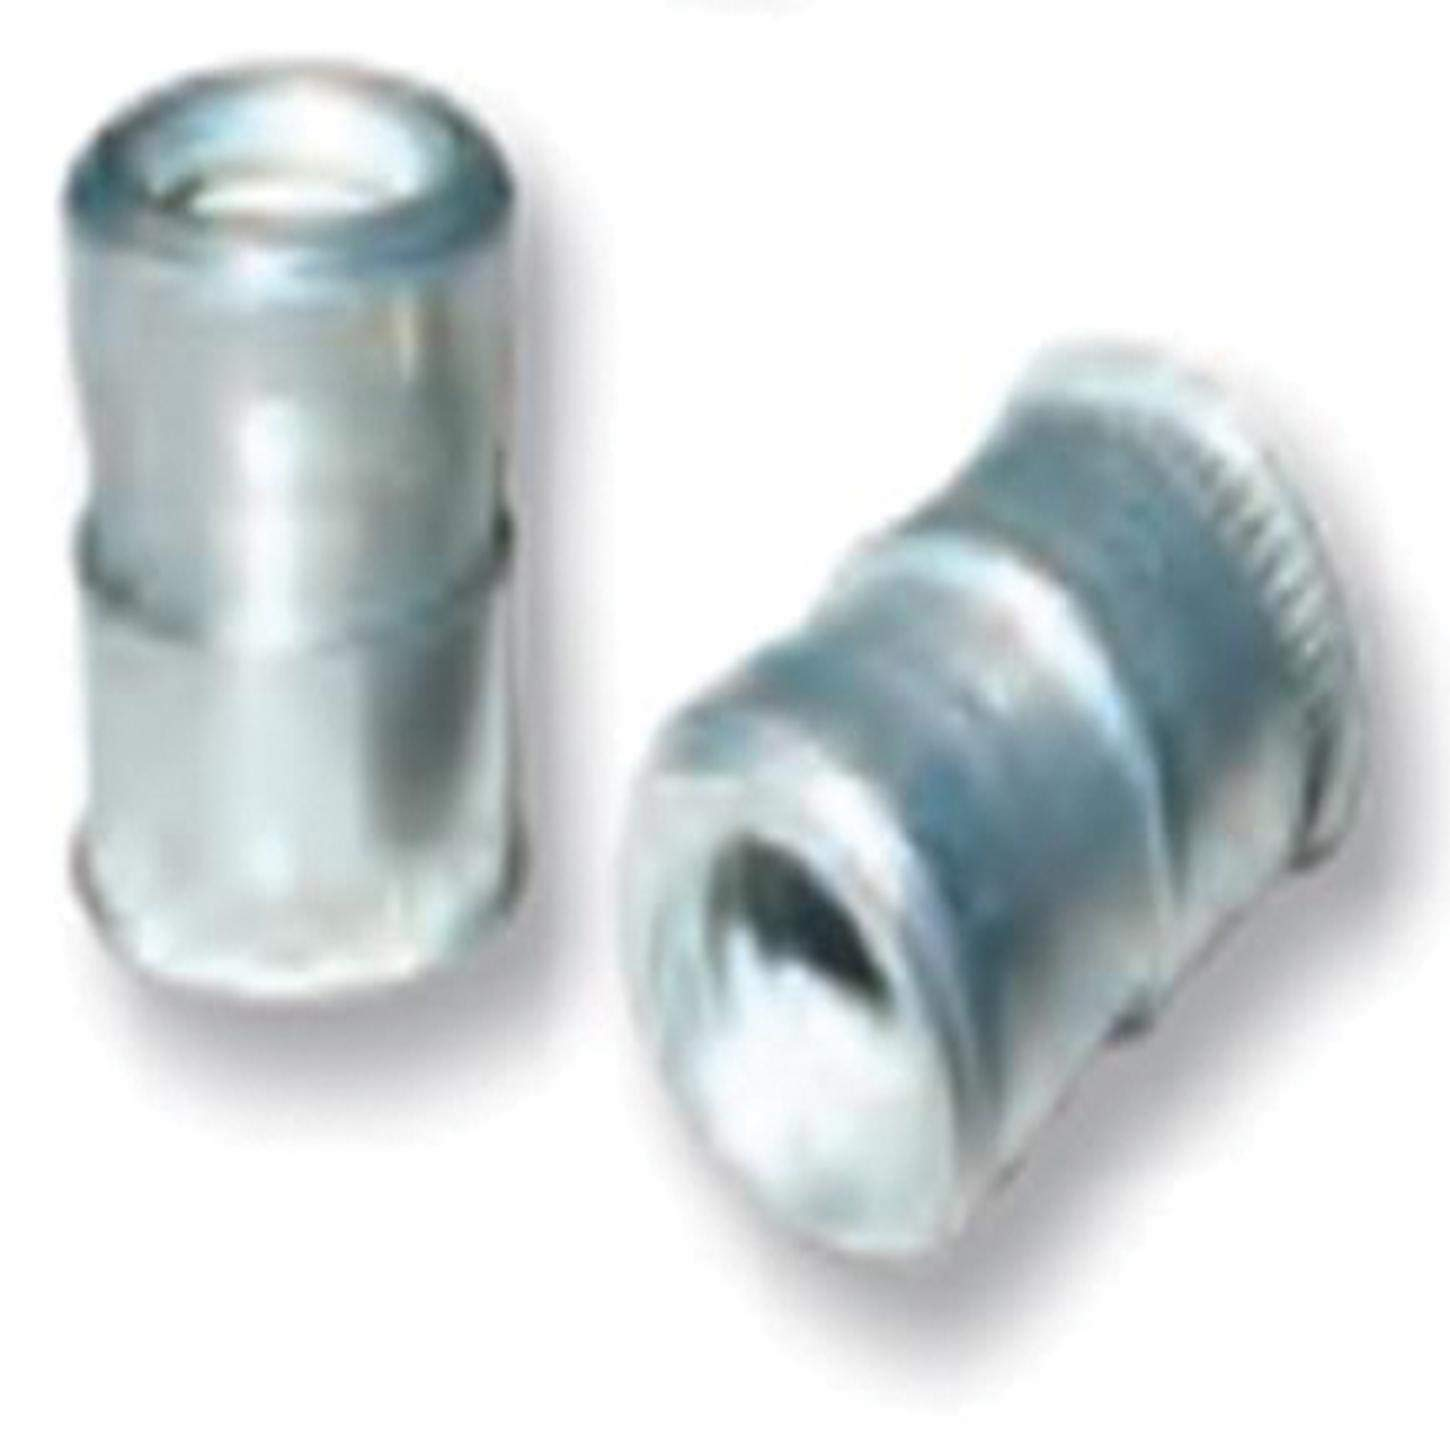 CFT2-3716, Nutsert Insert, 3/8-16, Material Thickness (.030-Up) RND Body Splined, Low PRO HD, Steel, Tin CLR (100 PK) by CFT/CAT Series